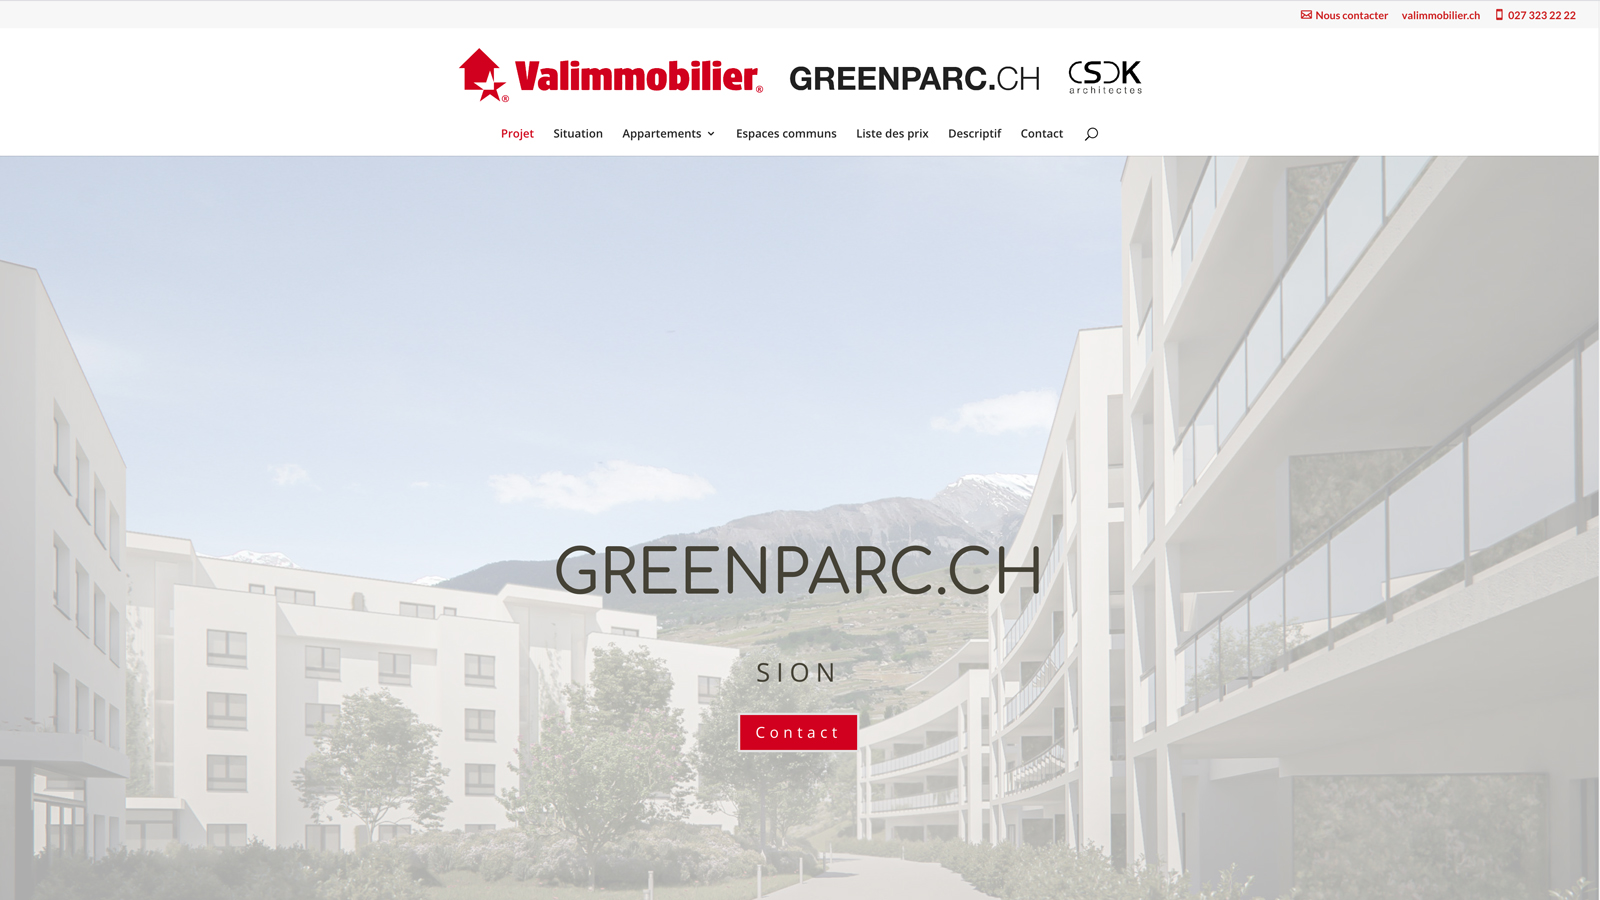 CSDK Architectes Sion Greenparc Website - Mise en ligne du site internet Greenparc ! - CSDK Architectes Sion Greenparc Website